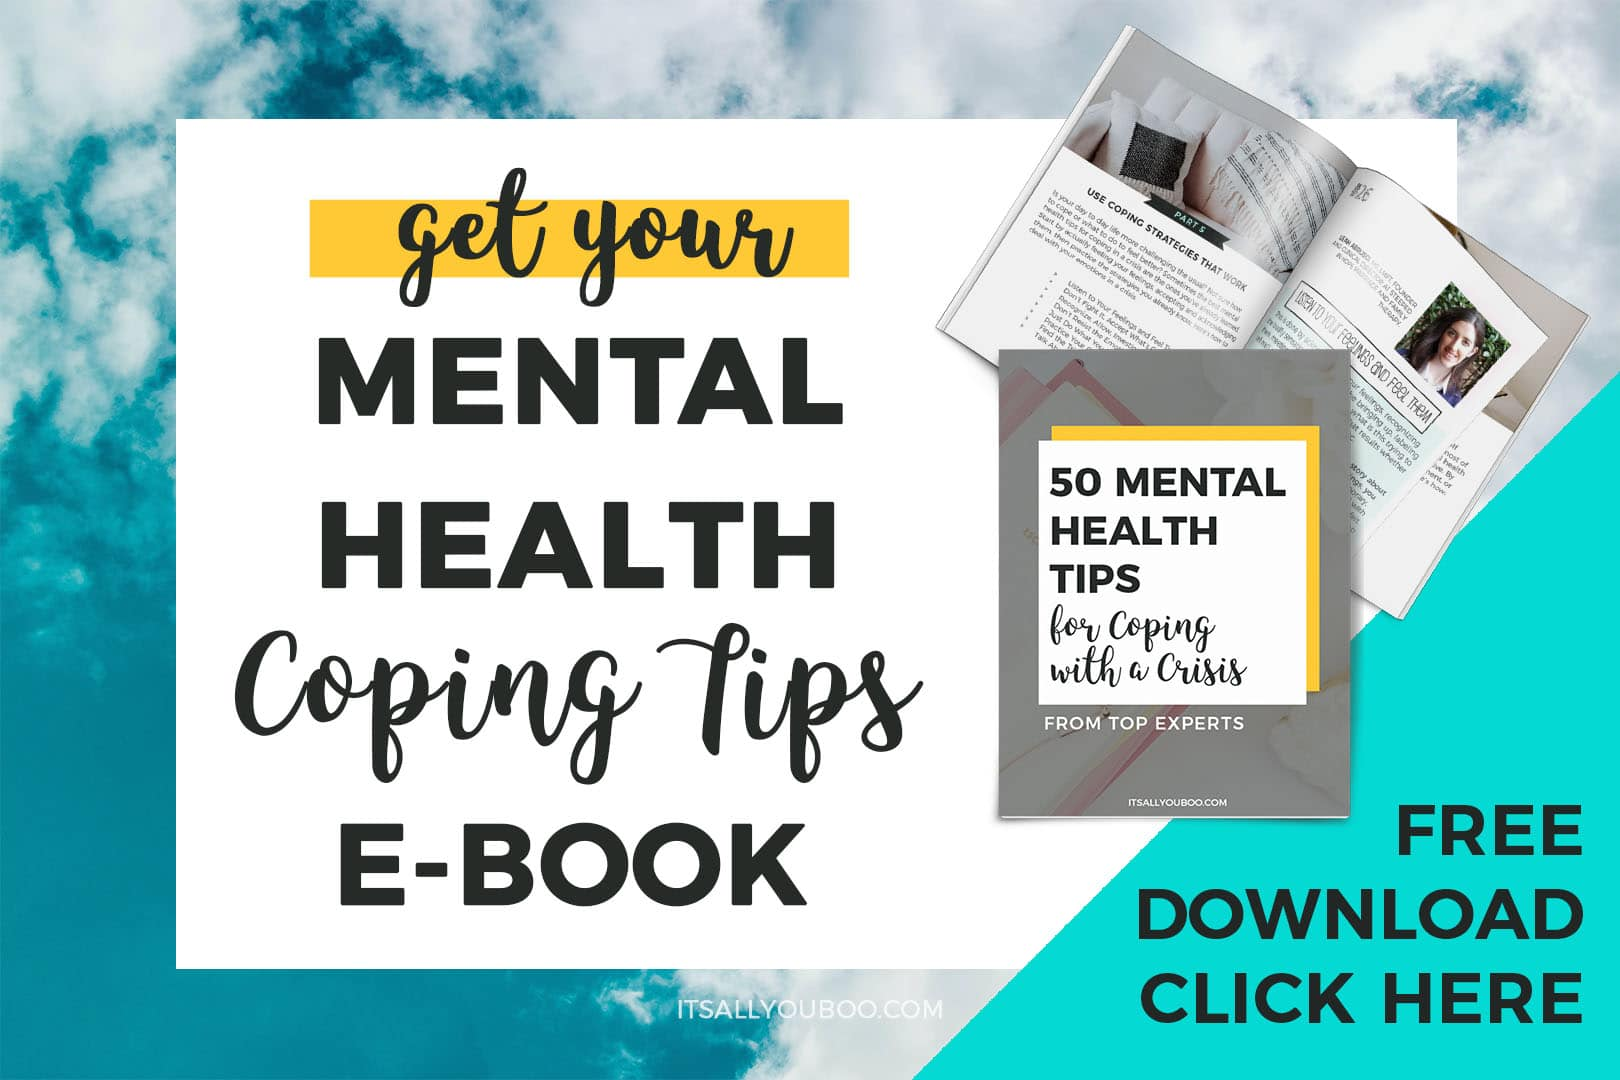 Get your FREE Mental Health Coping Tips eBook